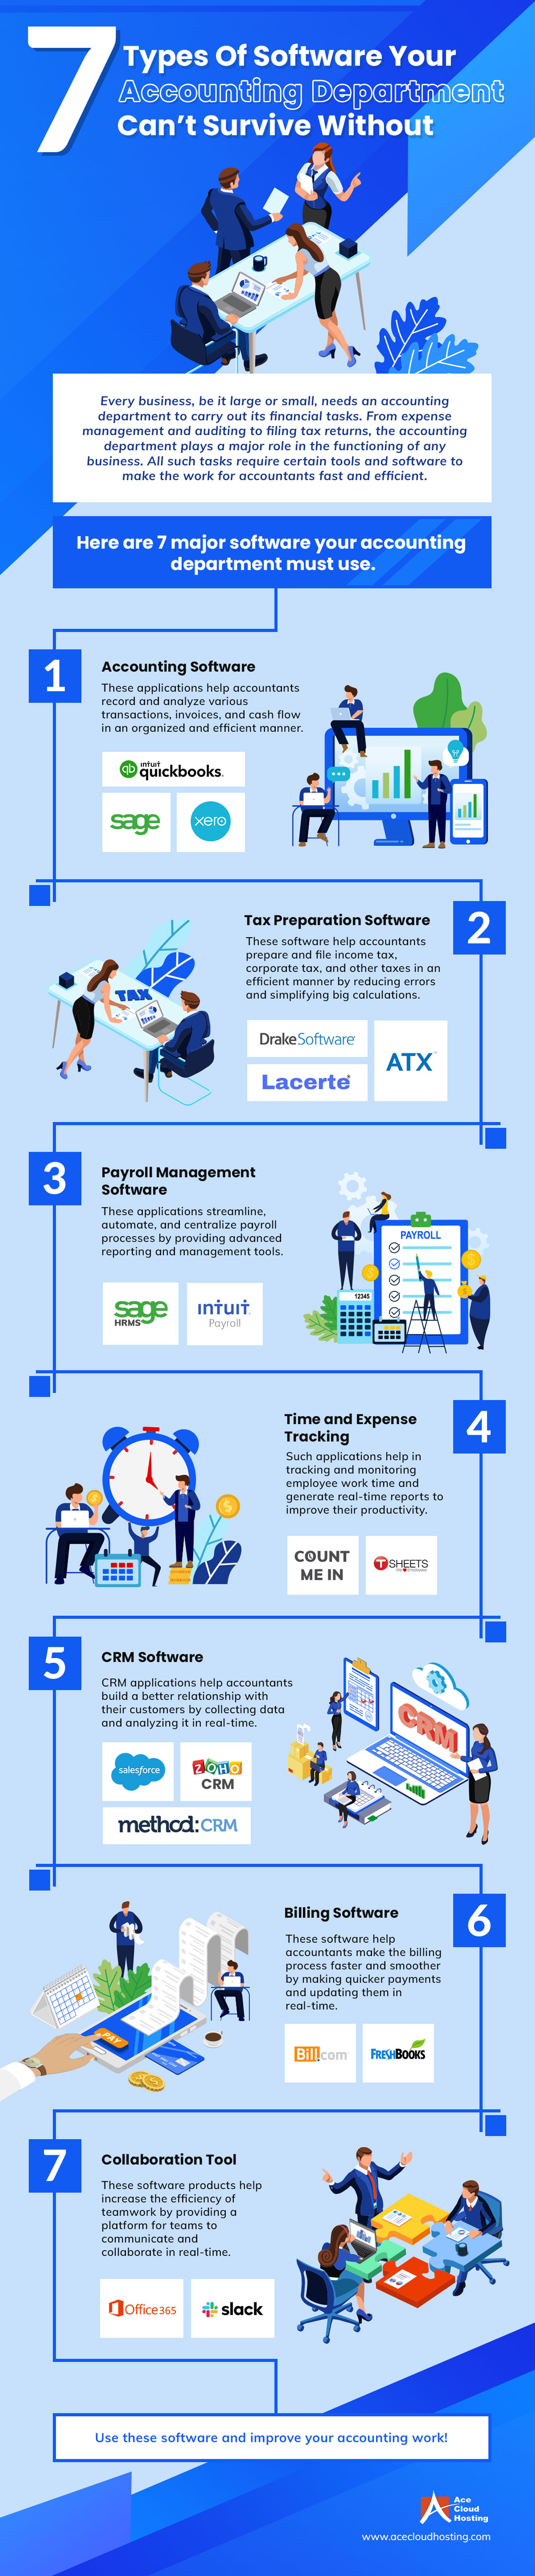 7 Types Of Software Your Accounting Department Can't Survive Without [Infographic]